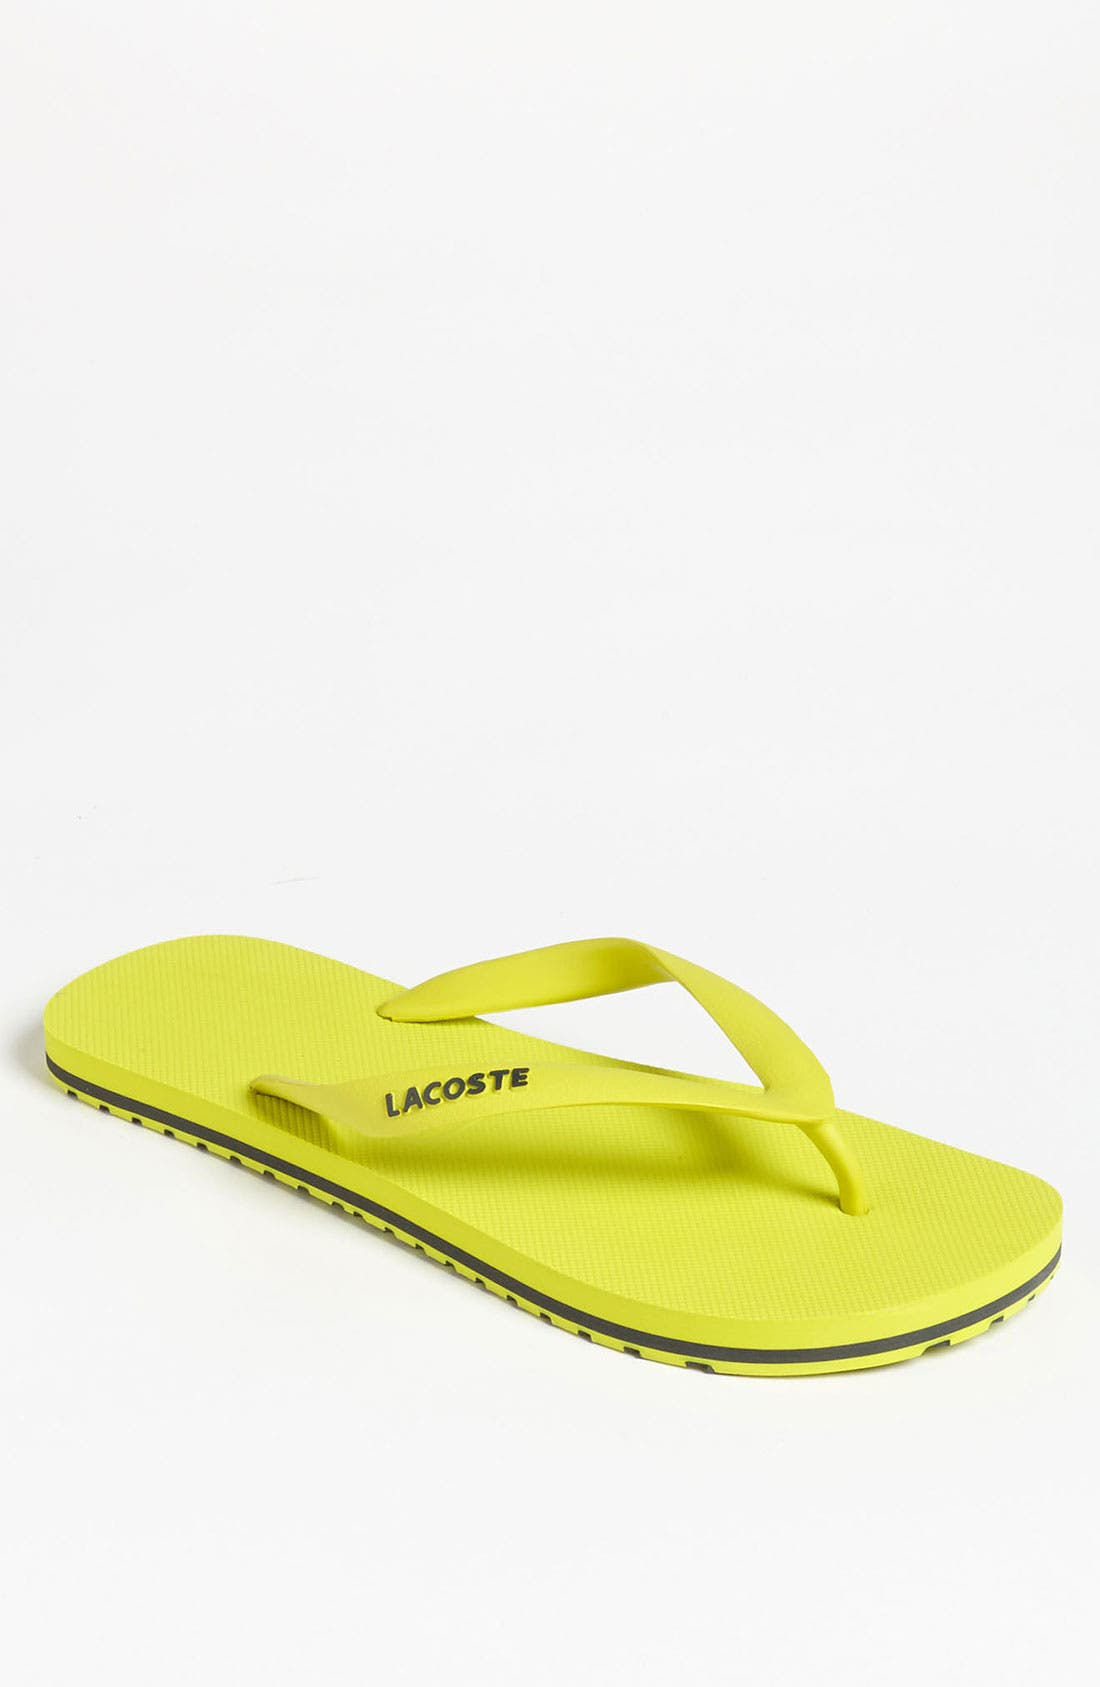 Alternate Image 1 Selected - Lacoste 'Nosara Jaw' Flip Flop (Men)